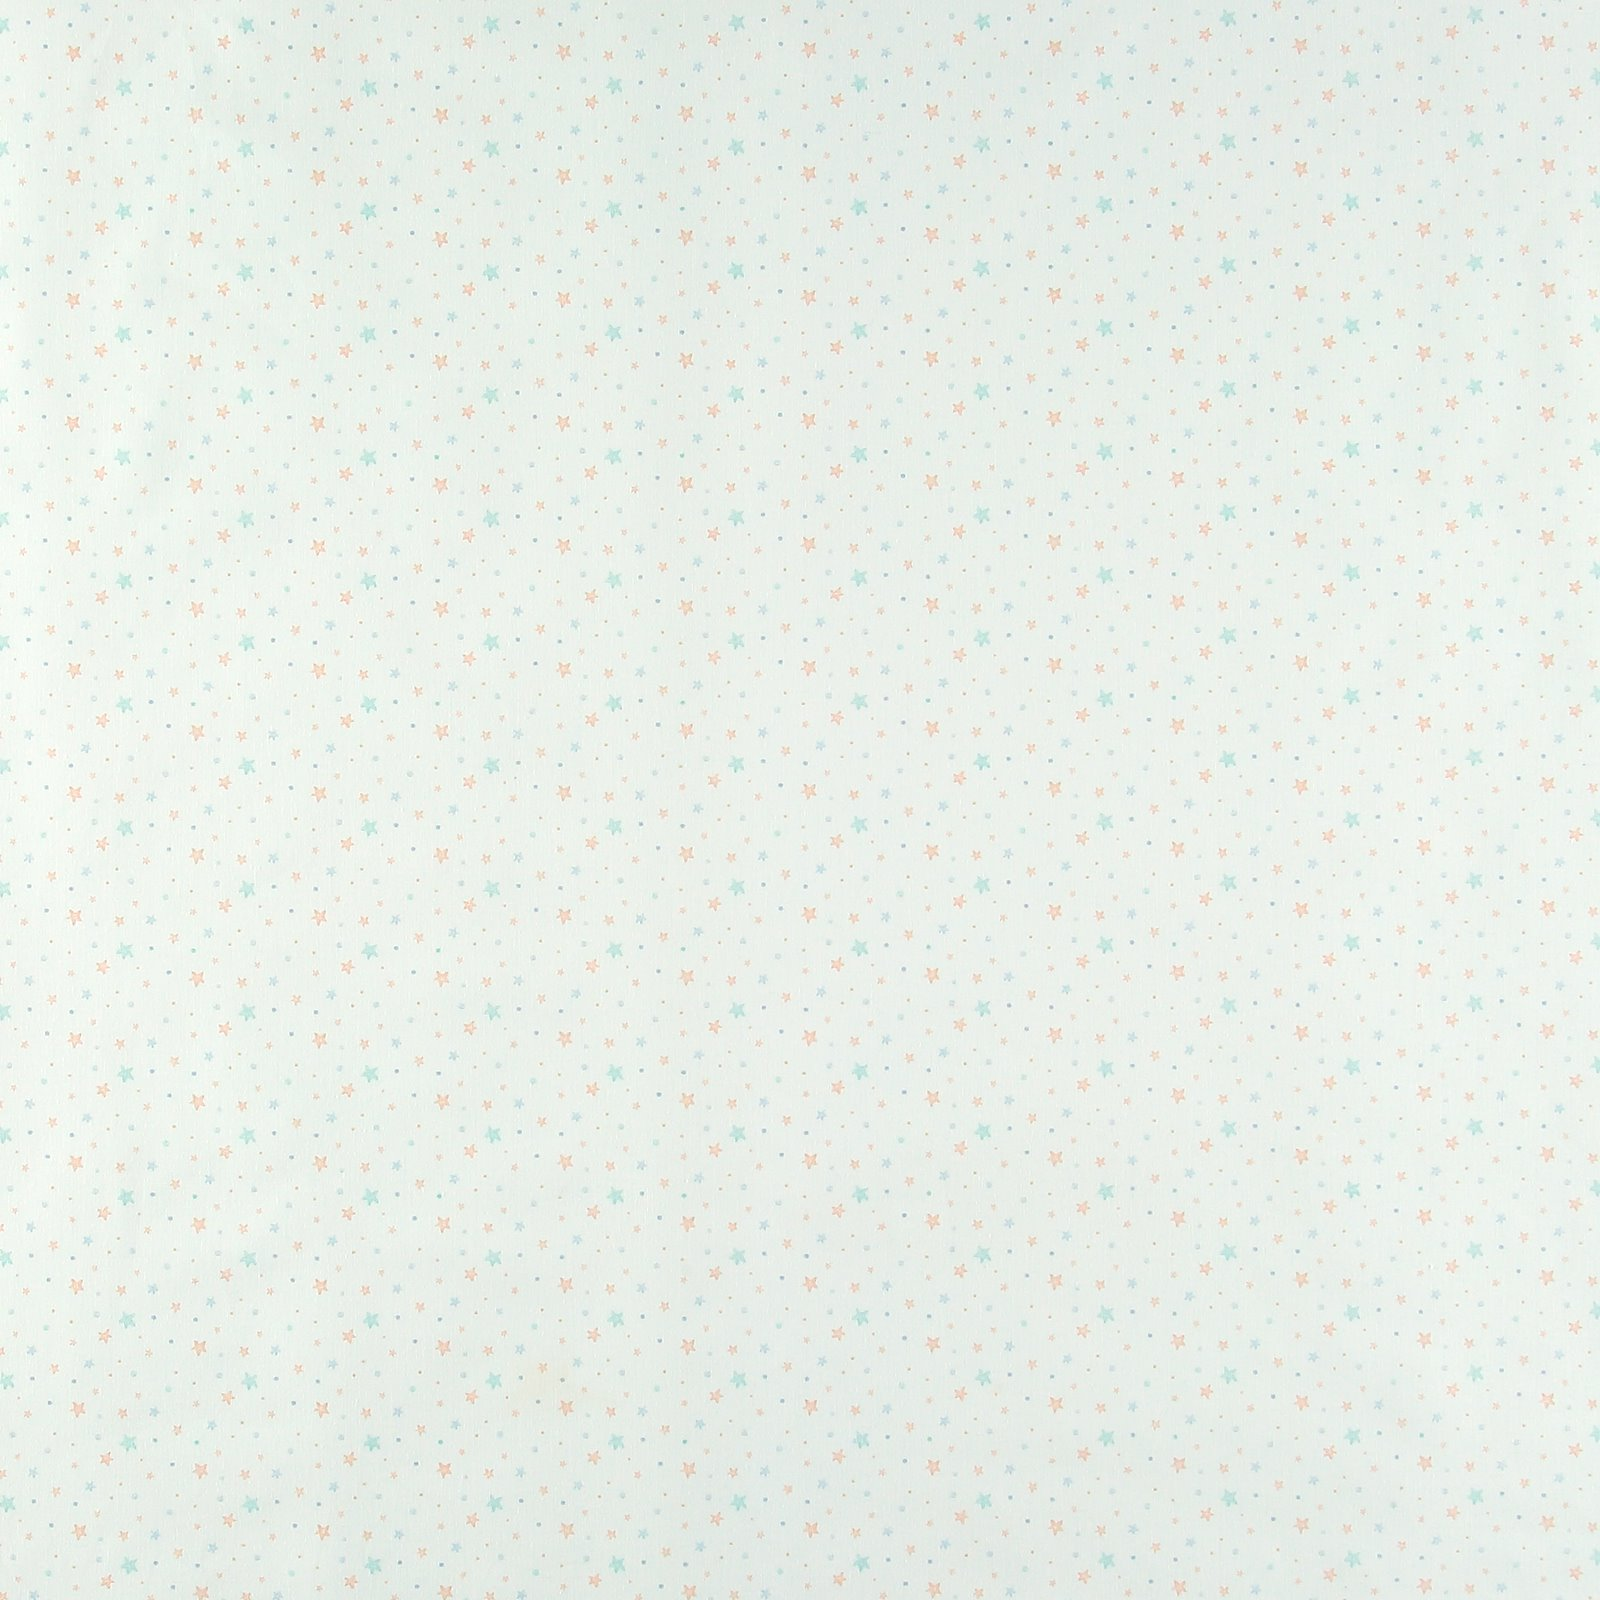 Cotton white with stars 780566_pack_sp